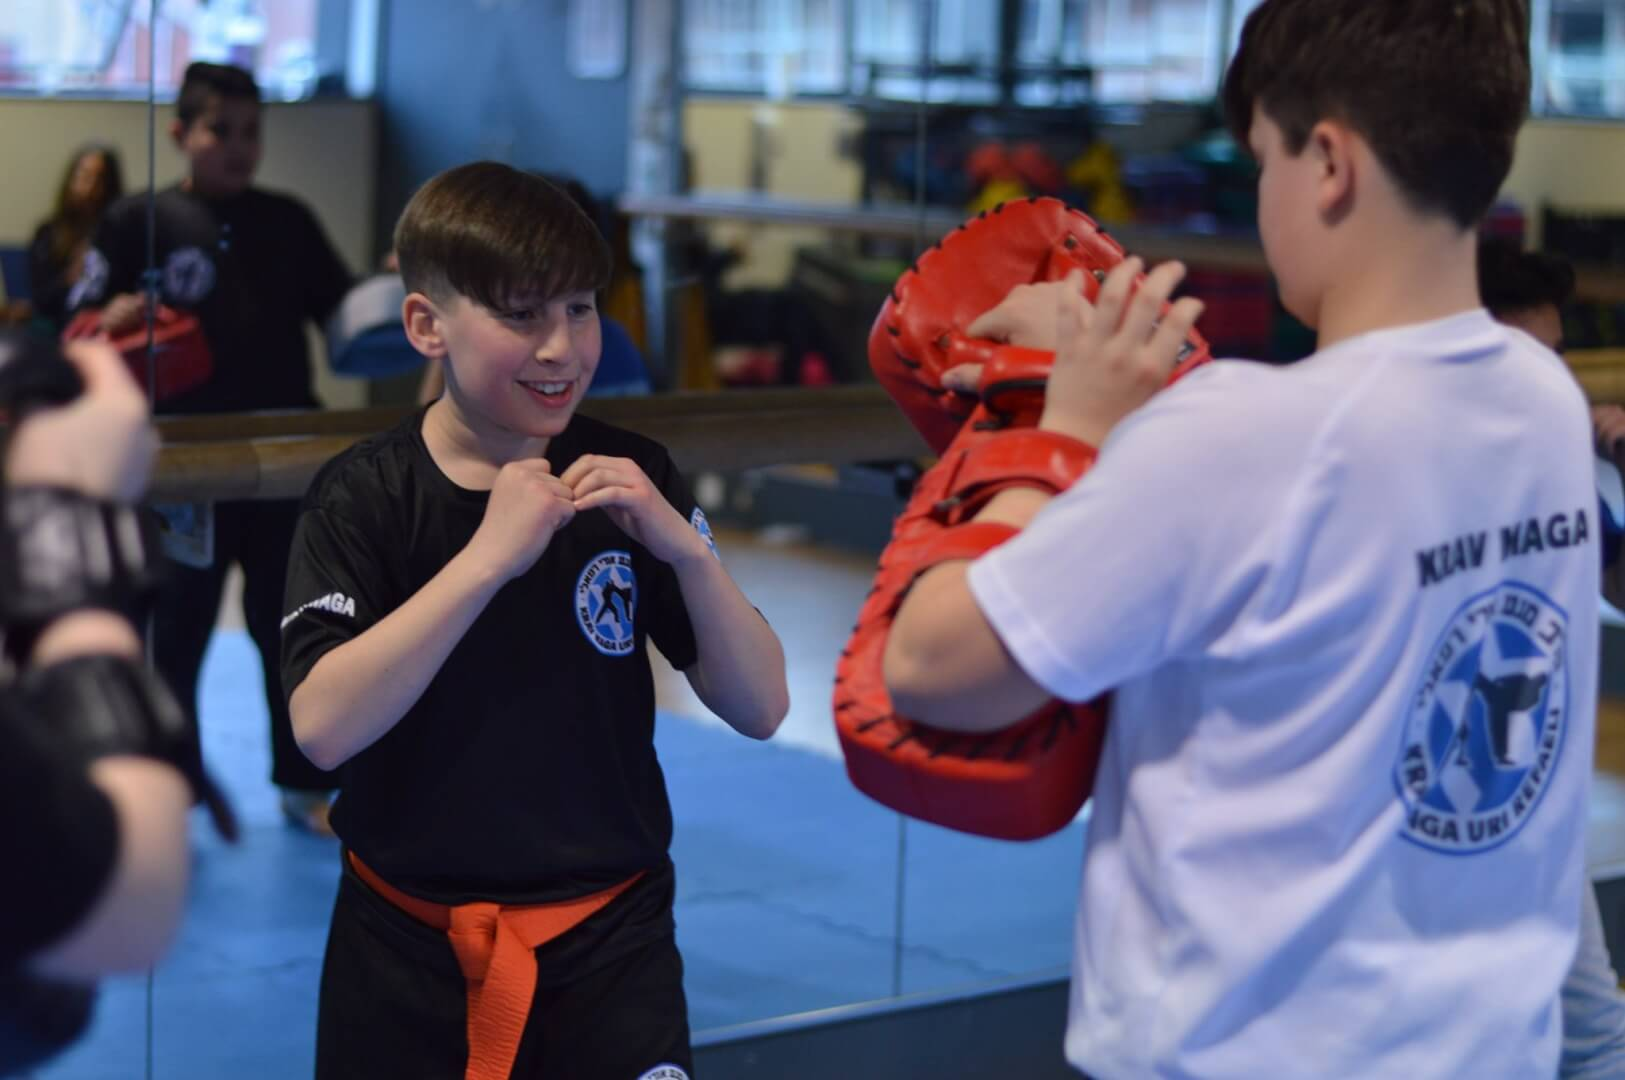 Krav Maga for Teens - London